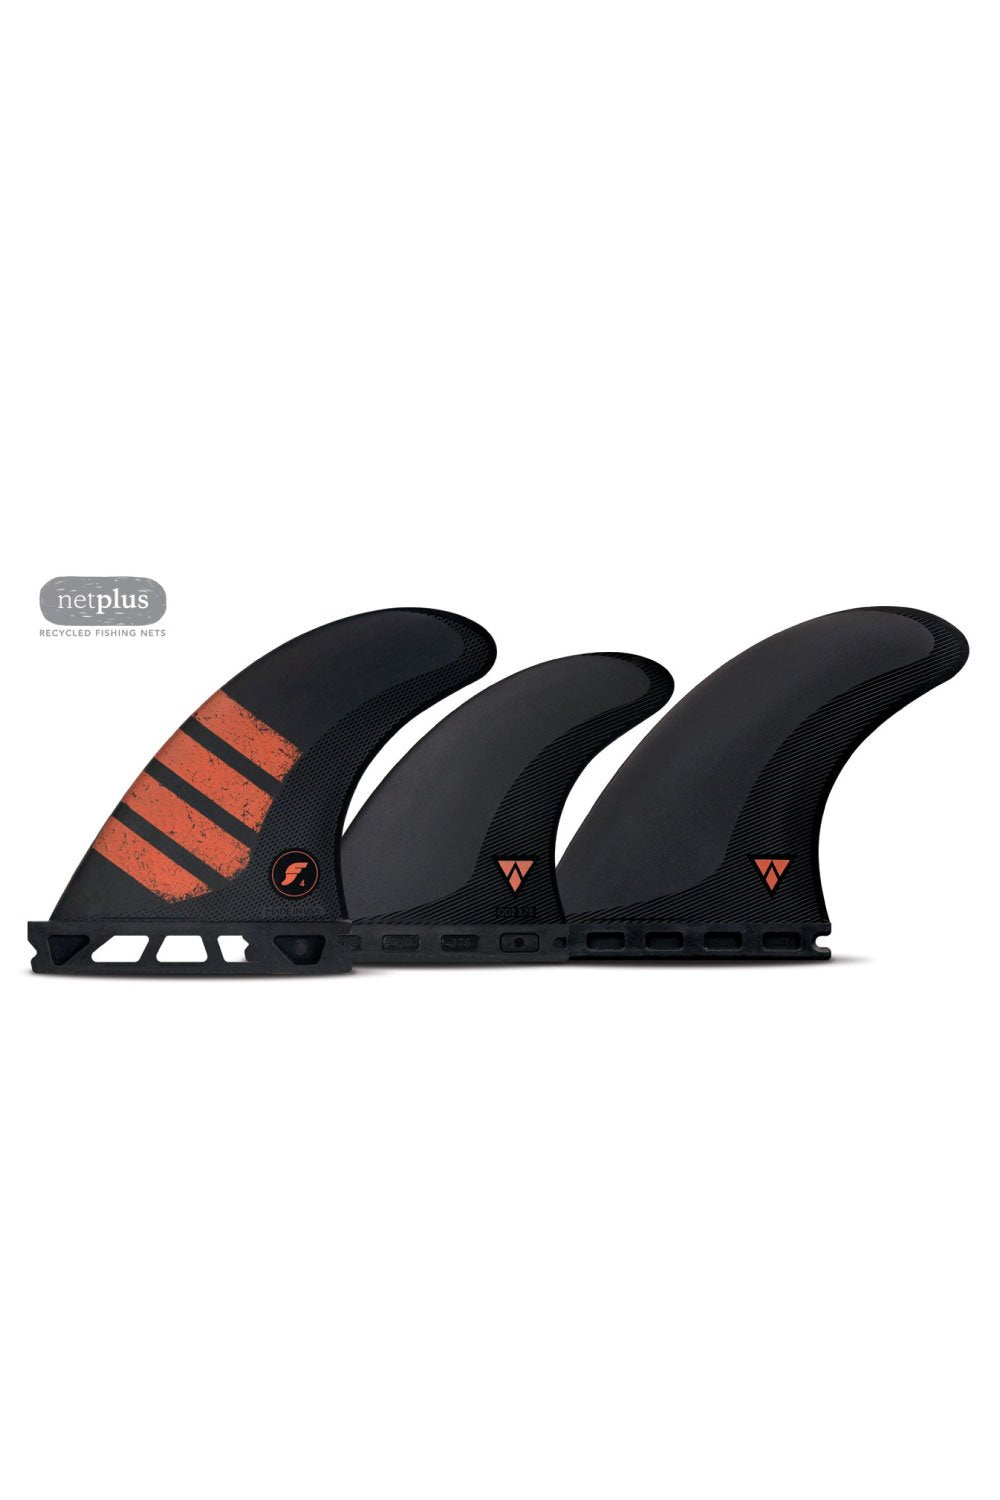 Futures F4 Alpha Carbon 5 Fin Set